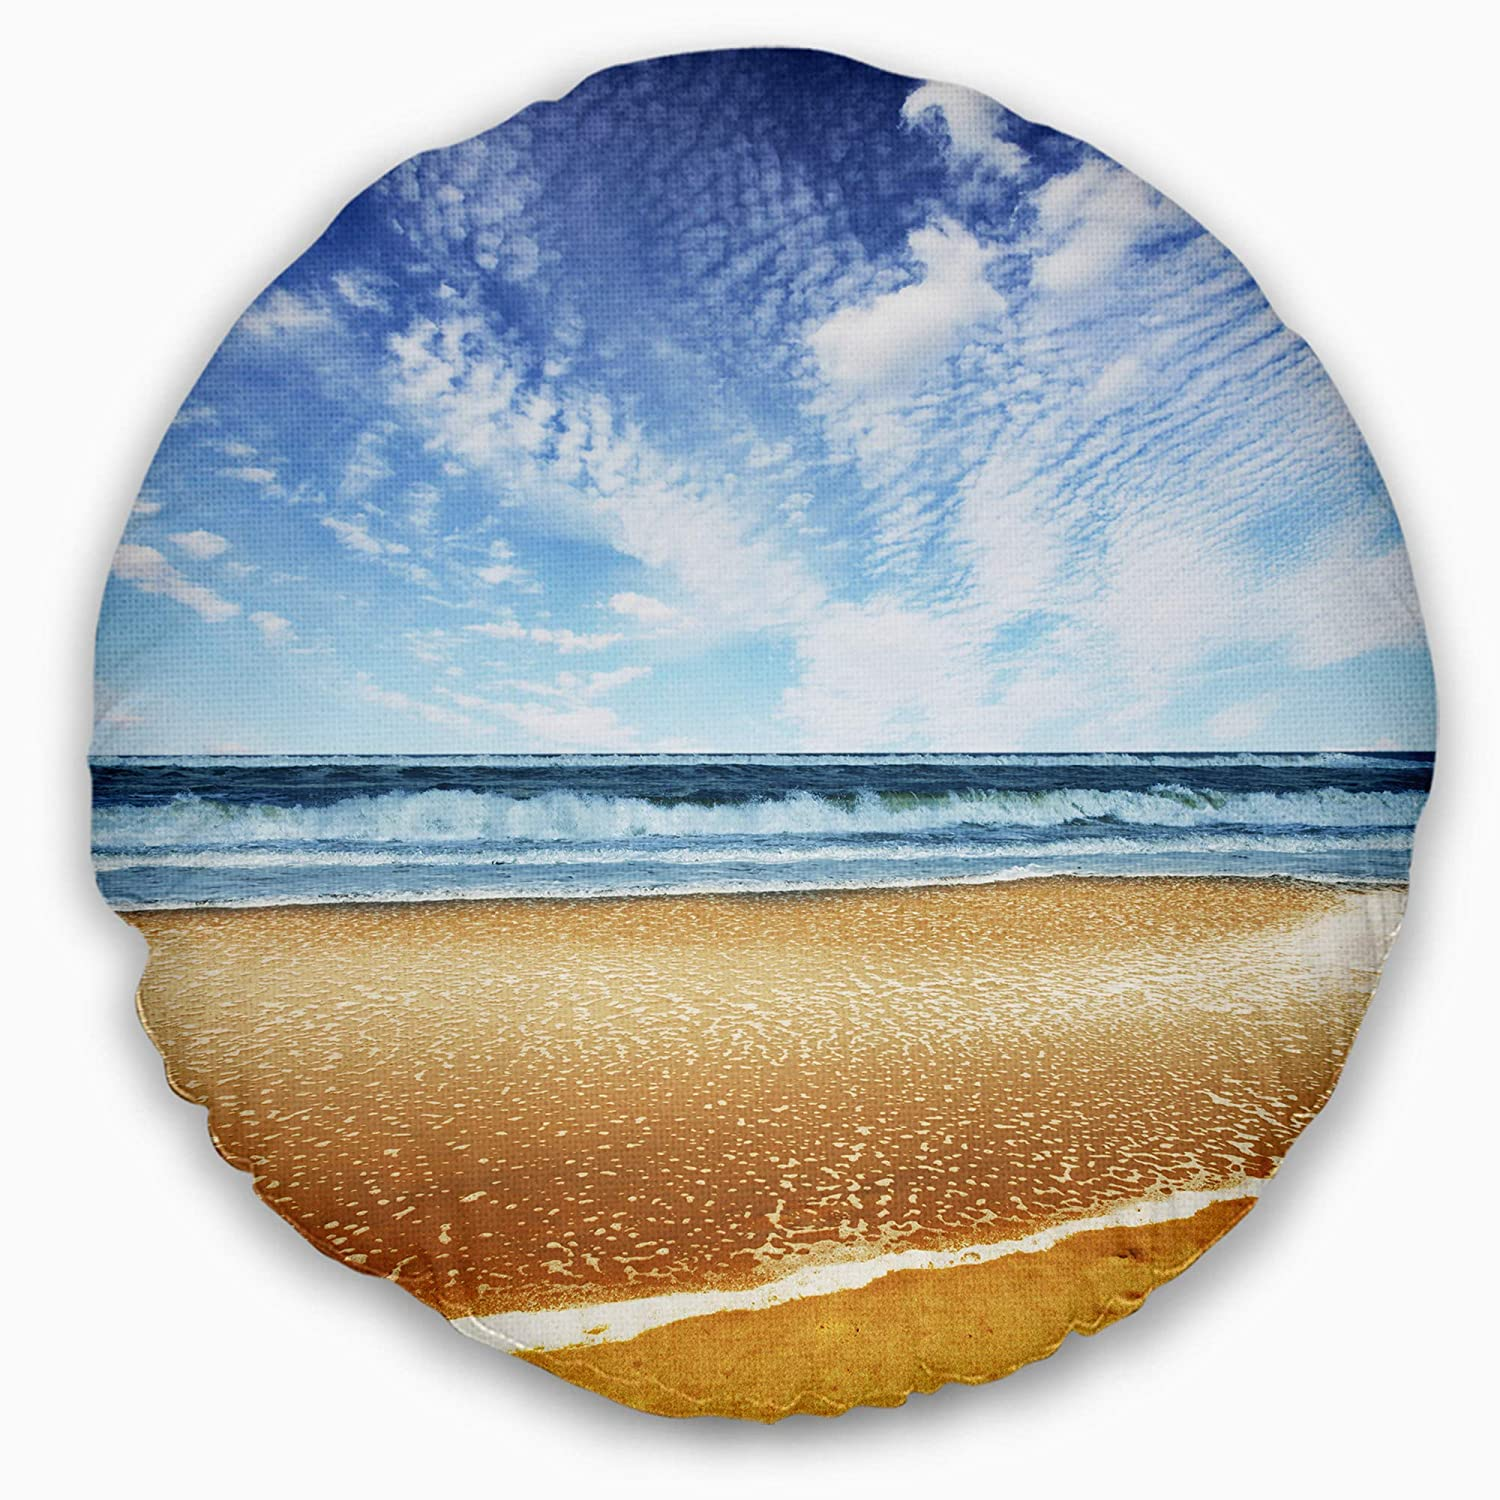 Designart CU12202-20-20-C Beautiful Sea Under Bright Sky' Seashore Round Cushion Cover for Living Room, Sofa Throw Pillow 20', Insert Printed On Both Side